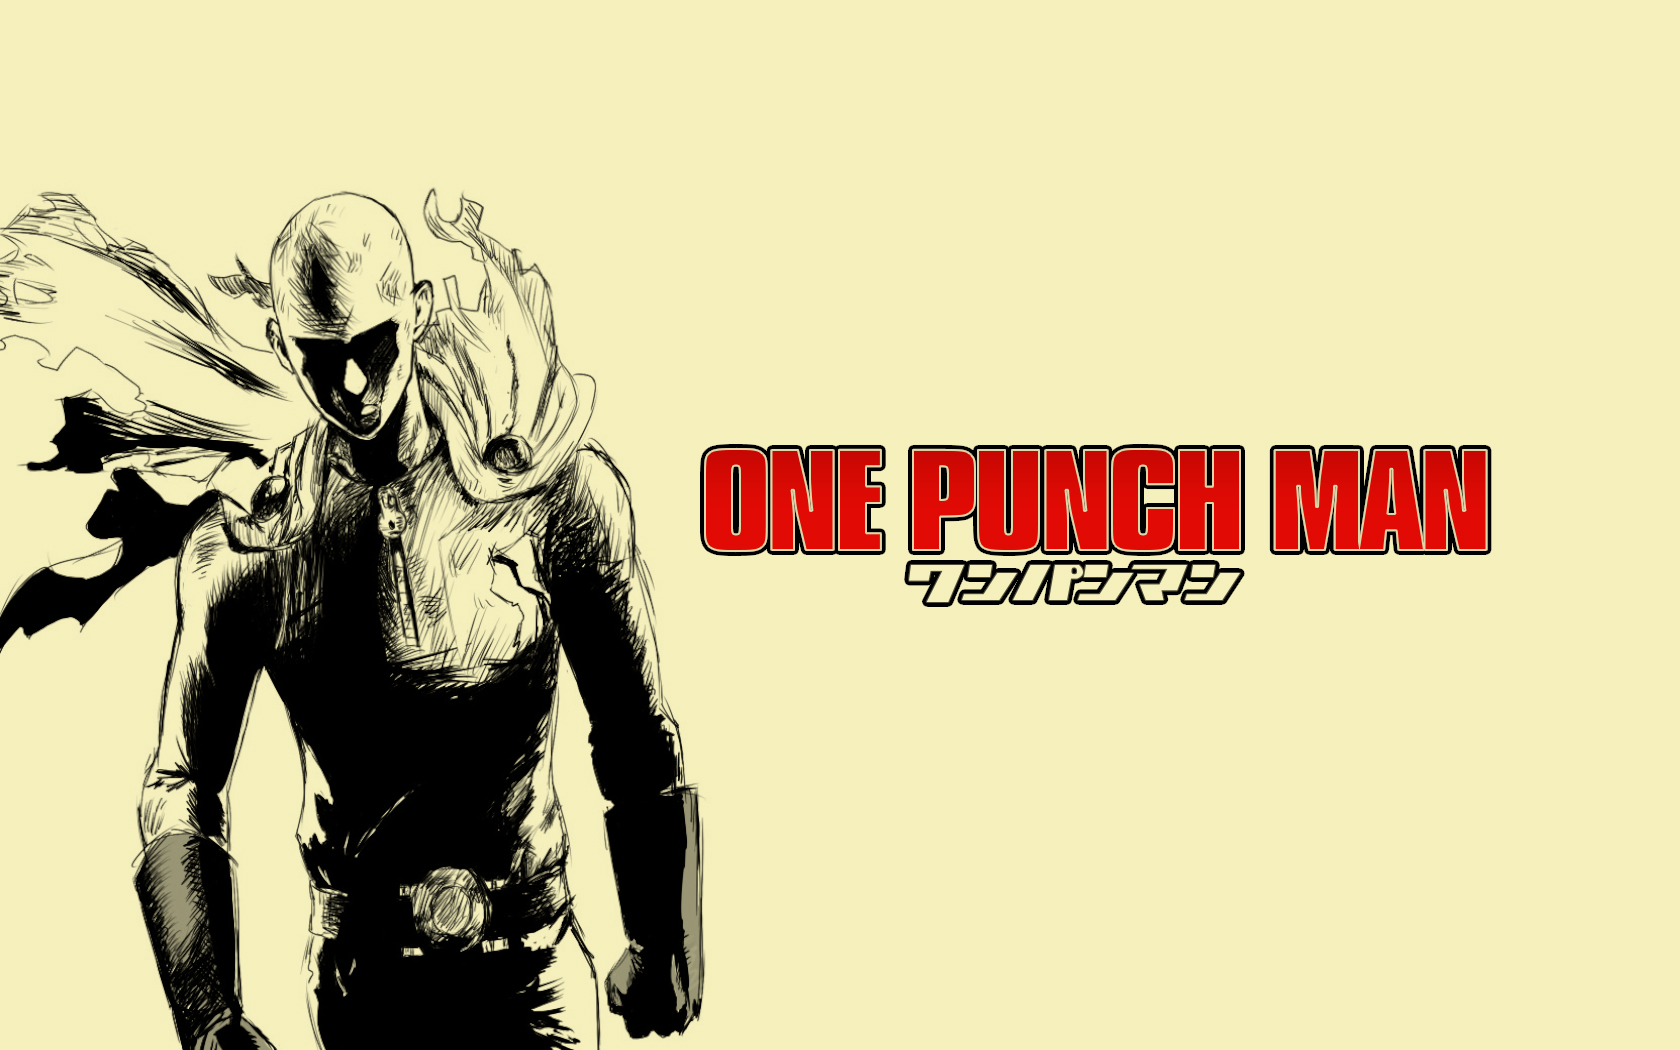 One Punch Man Pc 2231081 Hd Wallpaper Backgrounds